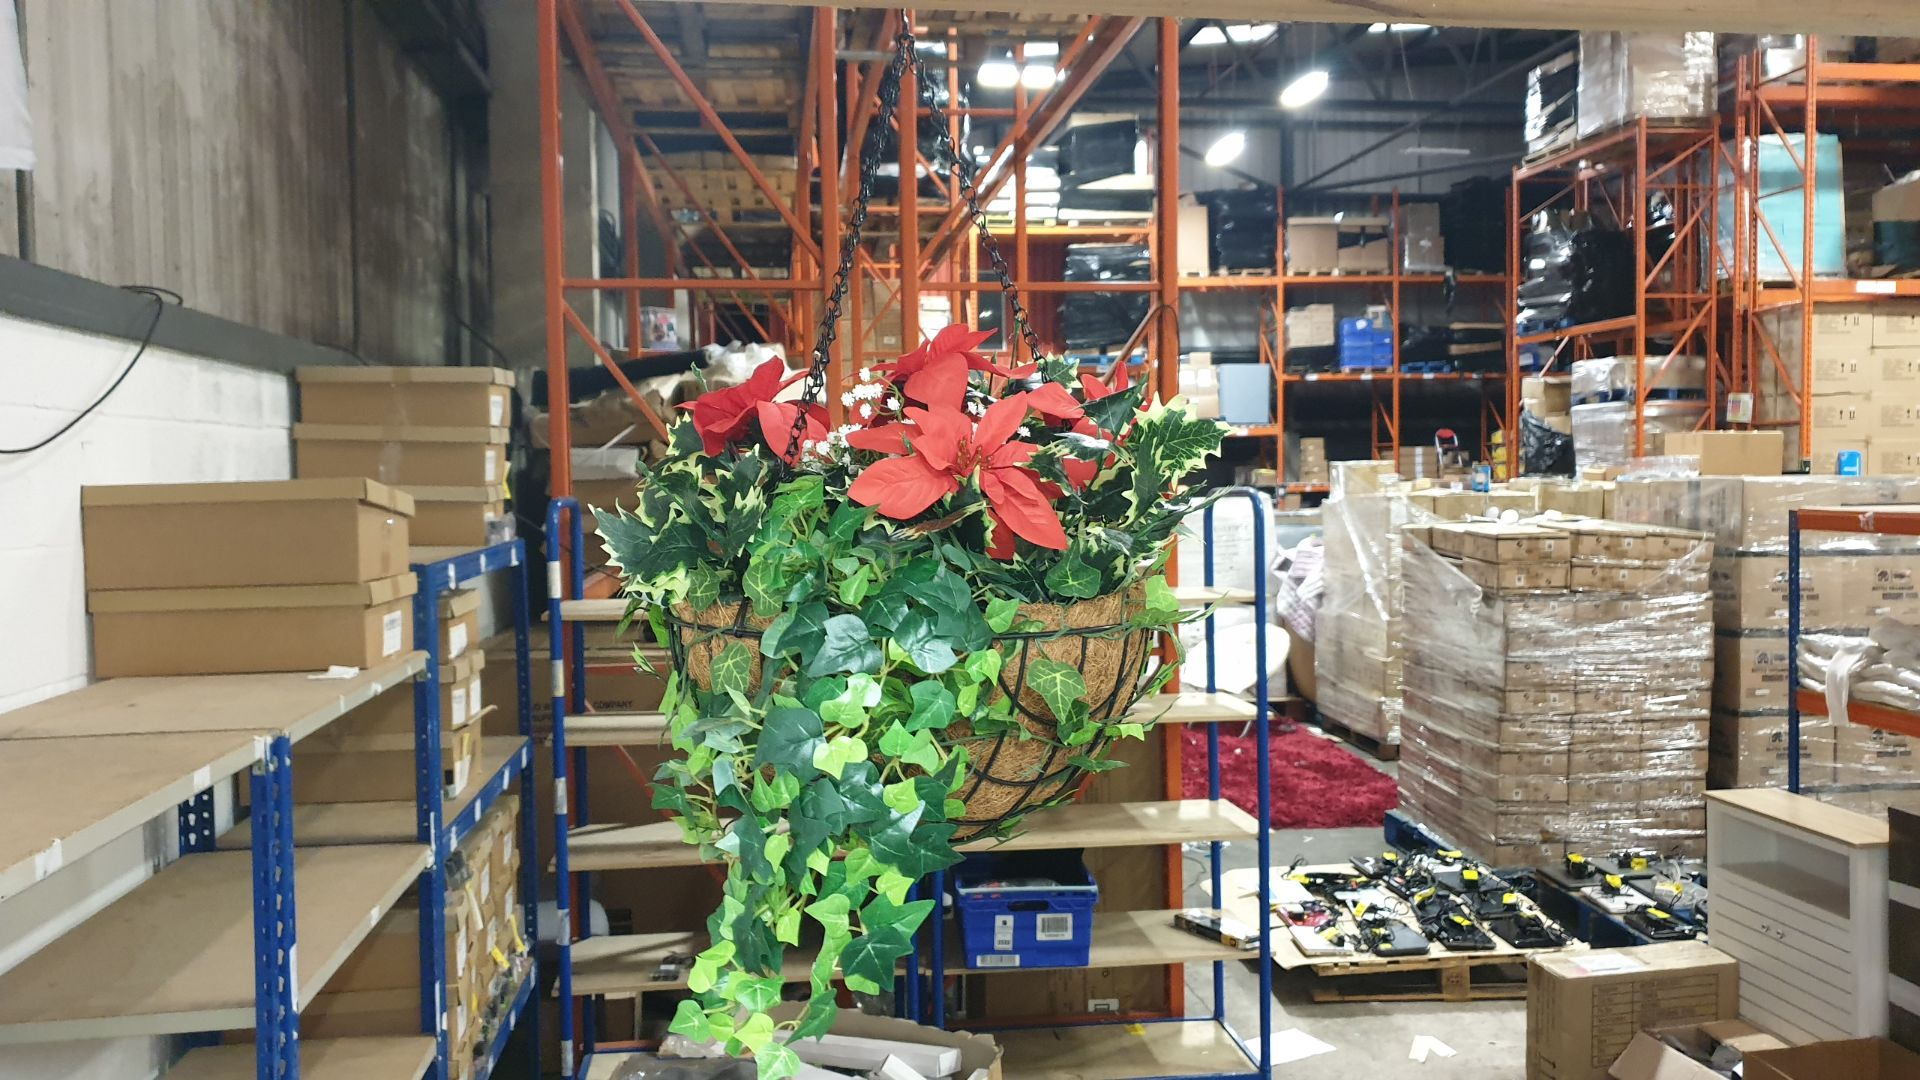 13 X BRAND NEW BOXED HANGING BASKETS - IN 13 BOXES